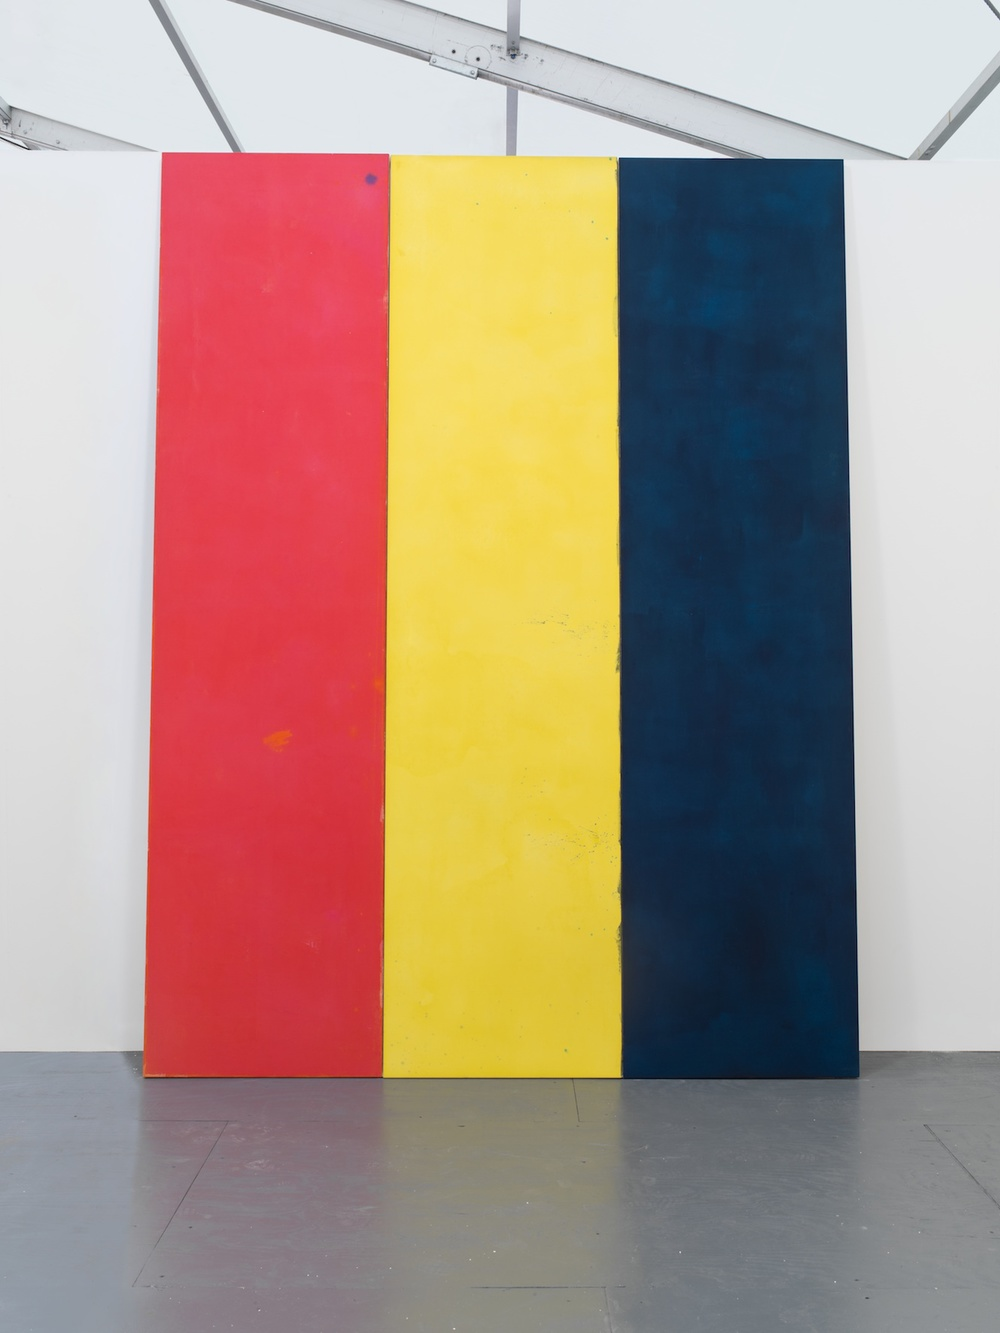 What is the Third Question  2013 Acrylic on canvas 3 parts, each: 365 x 83.8 cm / 144 x 33 in Overall: 365 x 251.5 cm / 144 x 99 in